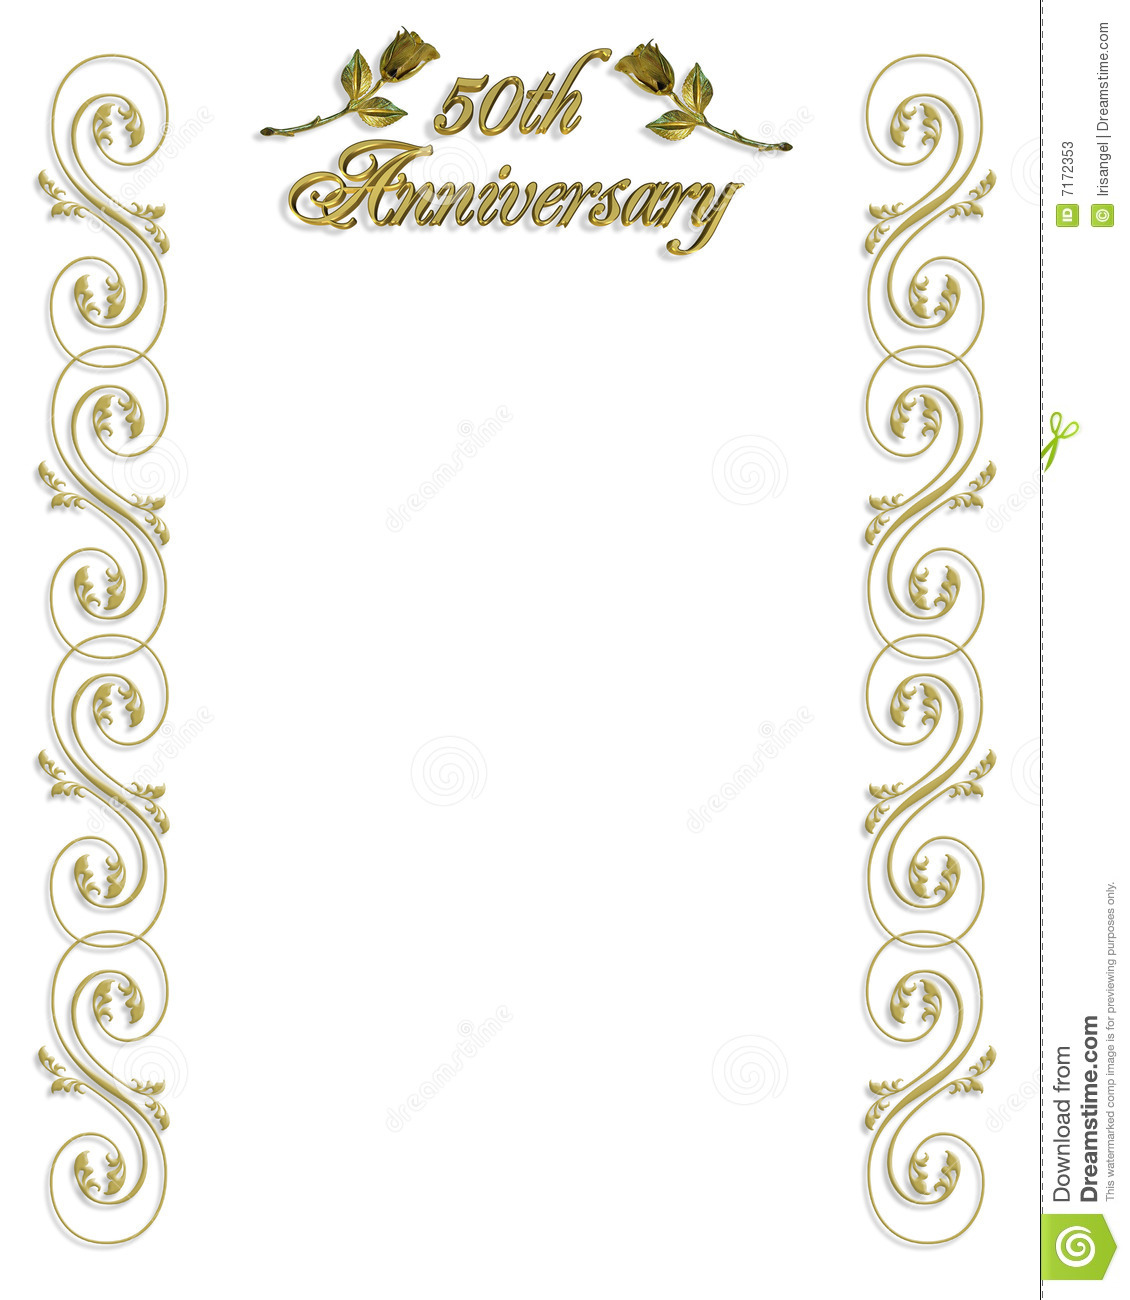 50th wedding anniversary invitation stock illustration image and illustration composition for 50th wedding anniversary invitation background card or border with gold ornamental design 3d text and golden roses stopboris Choice Image